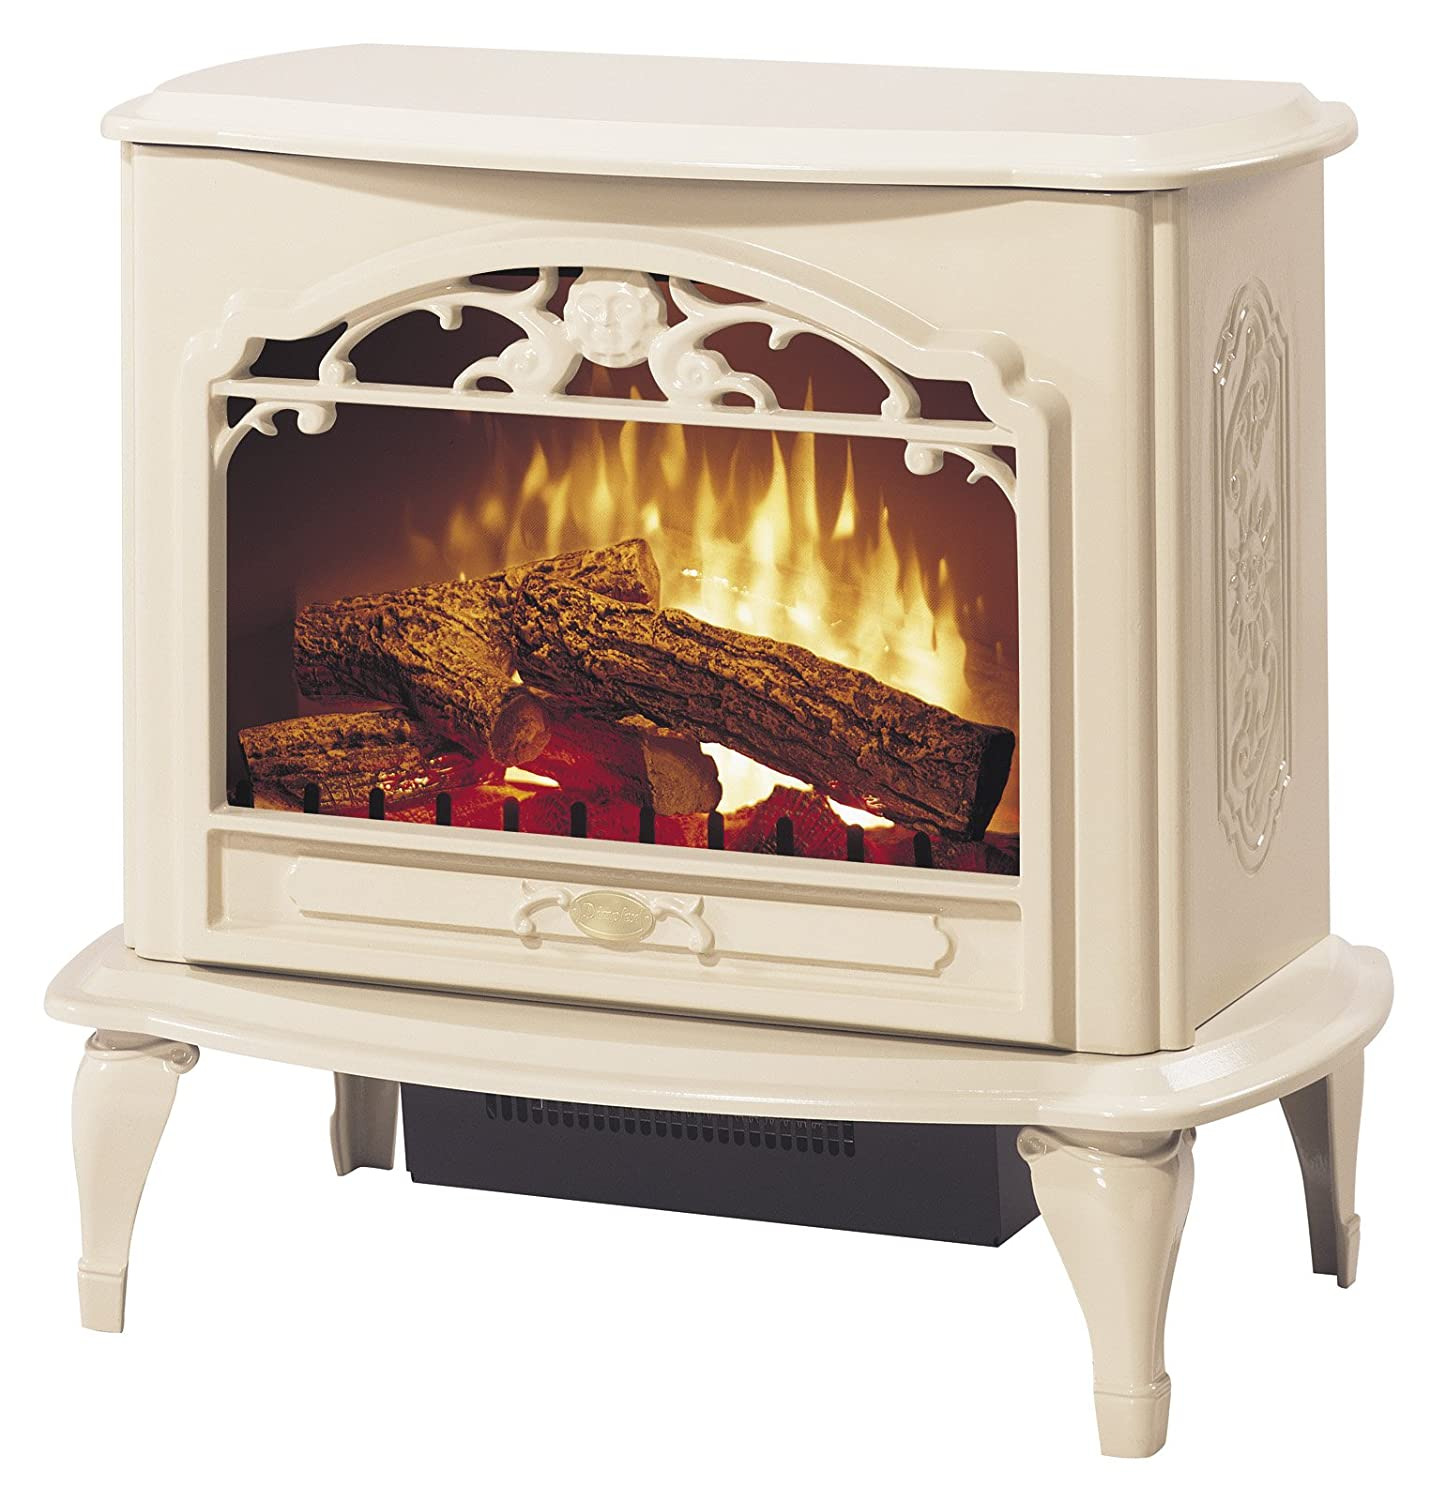 Read our comprehensive review of the Dimplex Celeste Electric Stove. This electric fireplace stove is absolutely top notch. Need to know info revealed.